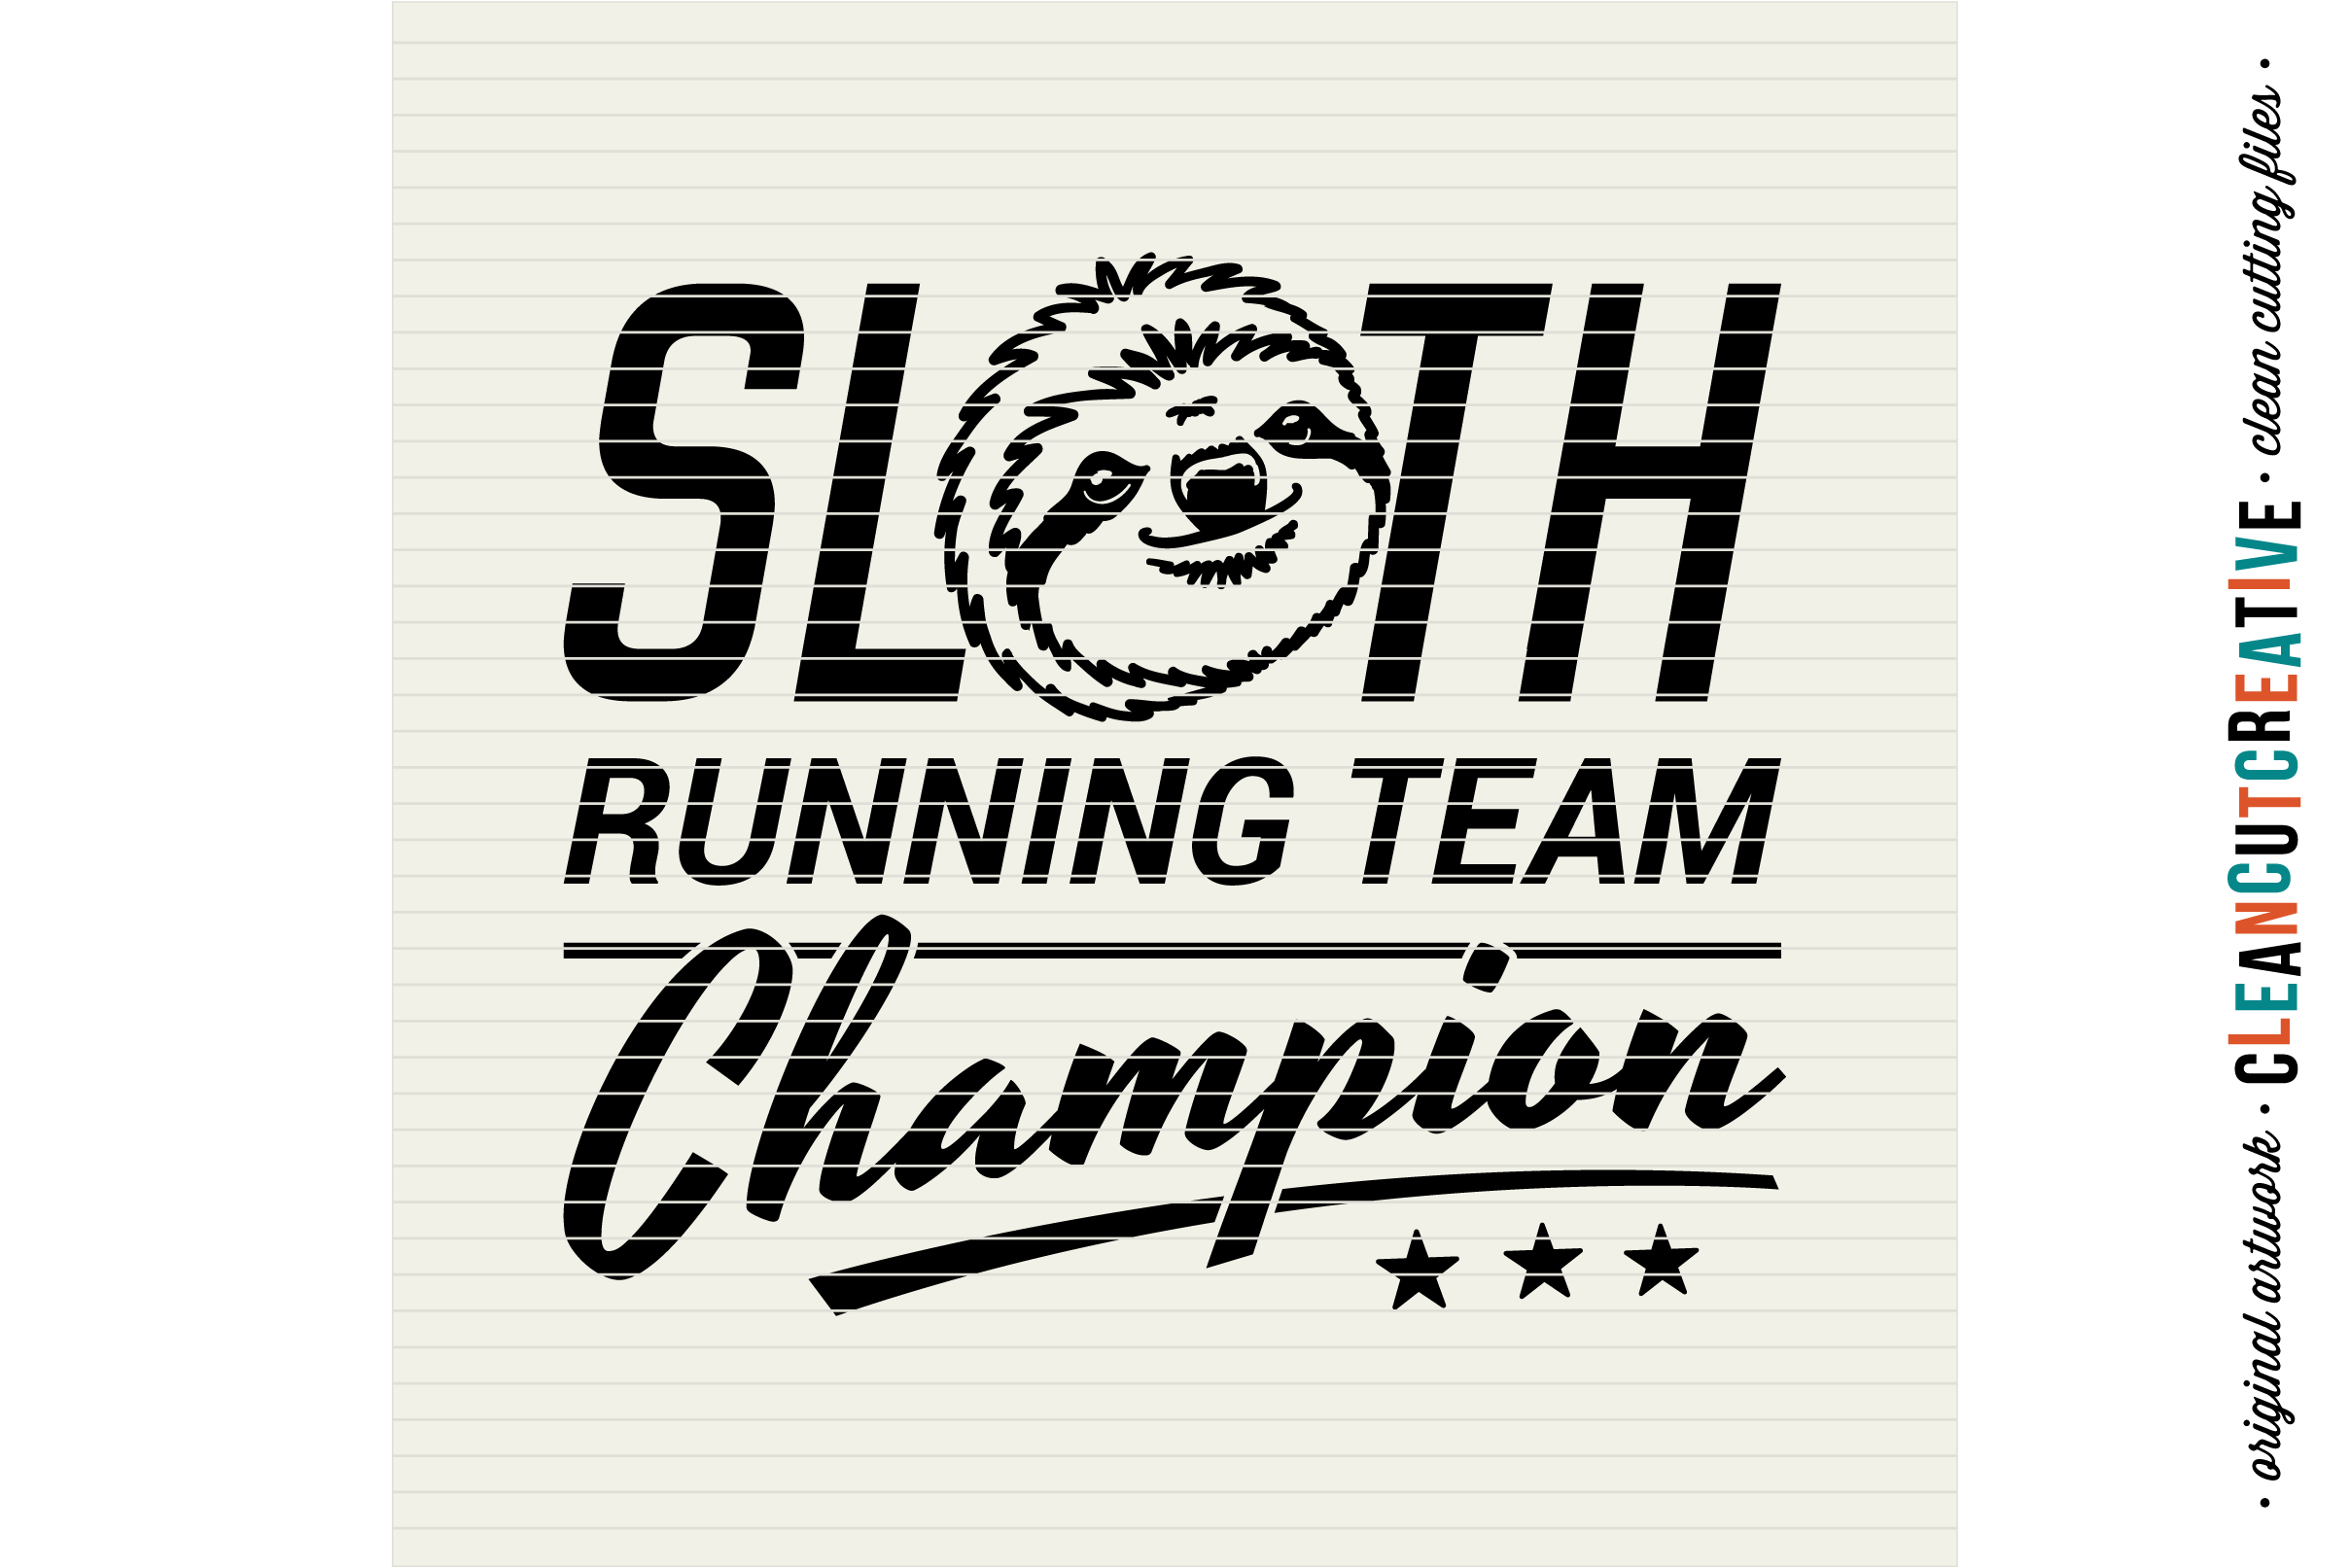 SLOTH RUNNING TEAM CHAMPION! - funny t-shirt design - SVG DXF EPS PNG - Cricut & Silhouette - clean cutting files example image 3